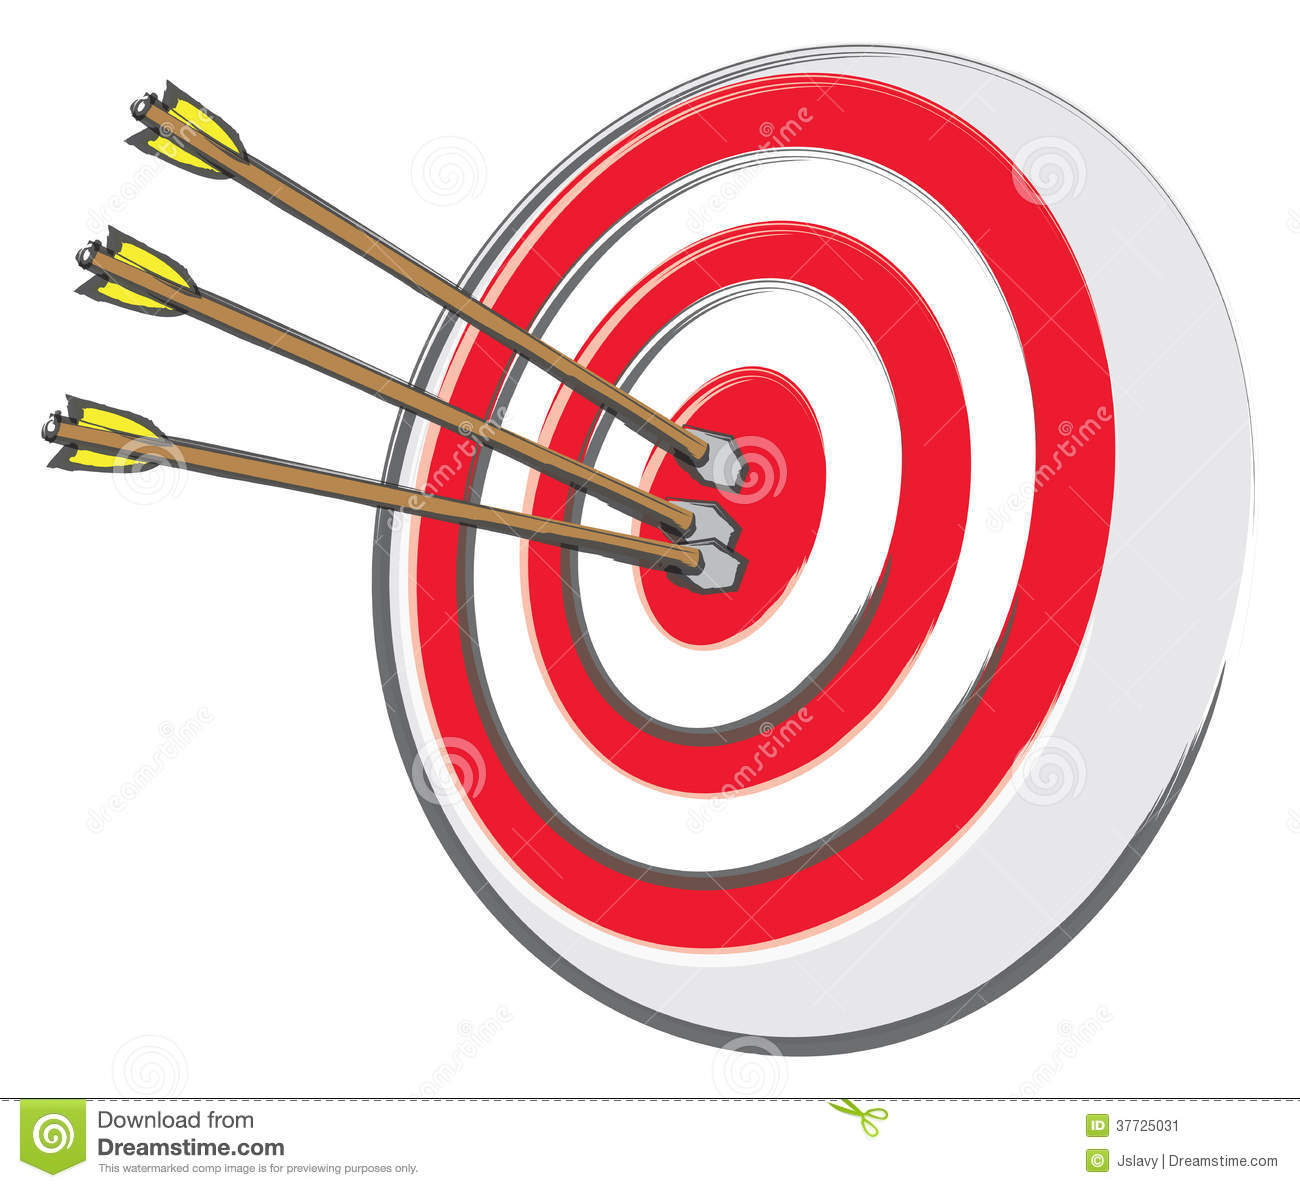 An Archery Target With Three Arrows At The Bullseye